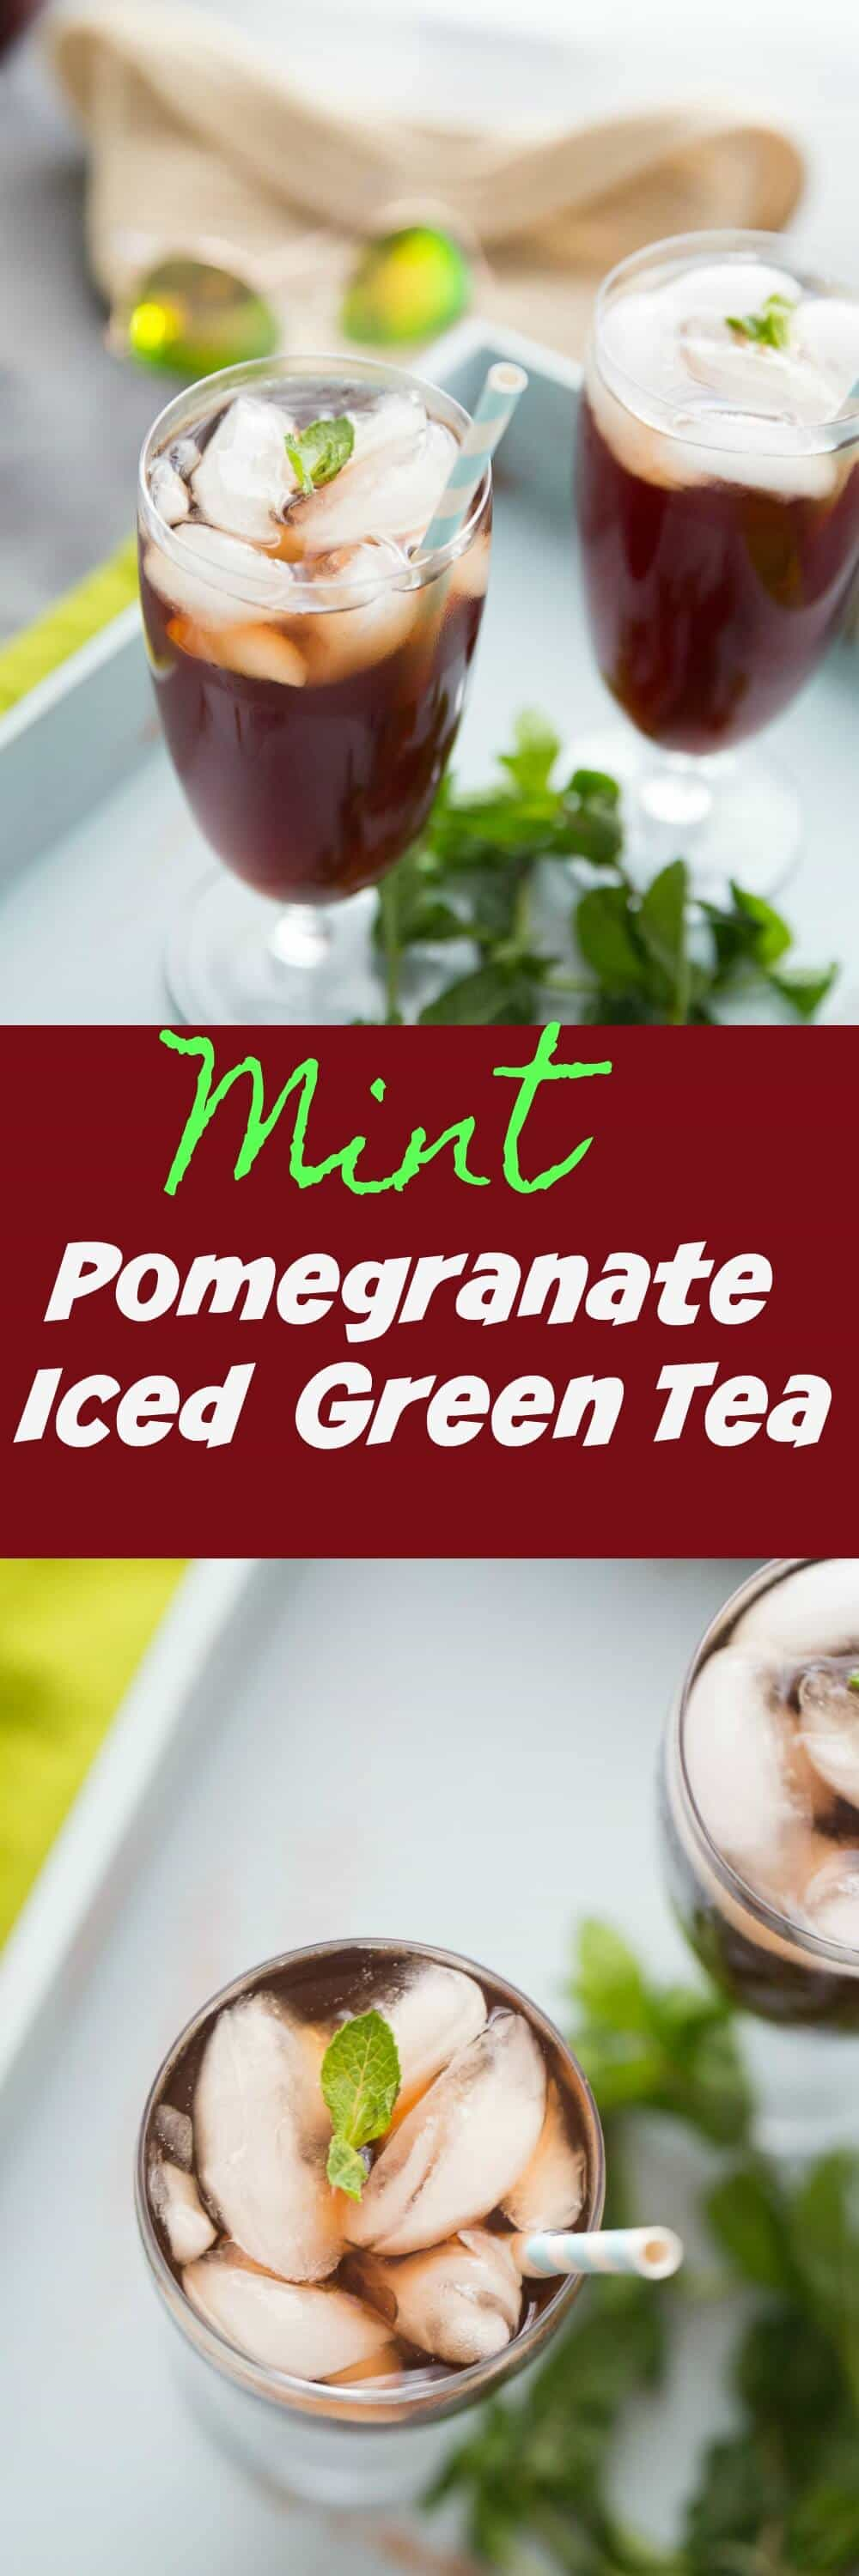 This pomegranate iced tea is the perfect midday pick me up! It is tart, slightly sweet and absolutely refreshing!